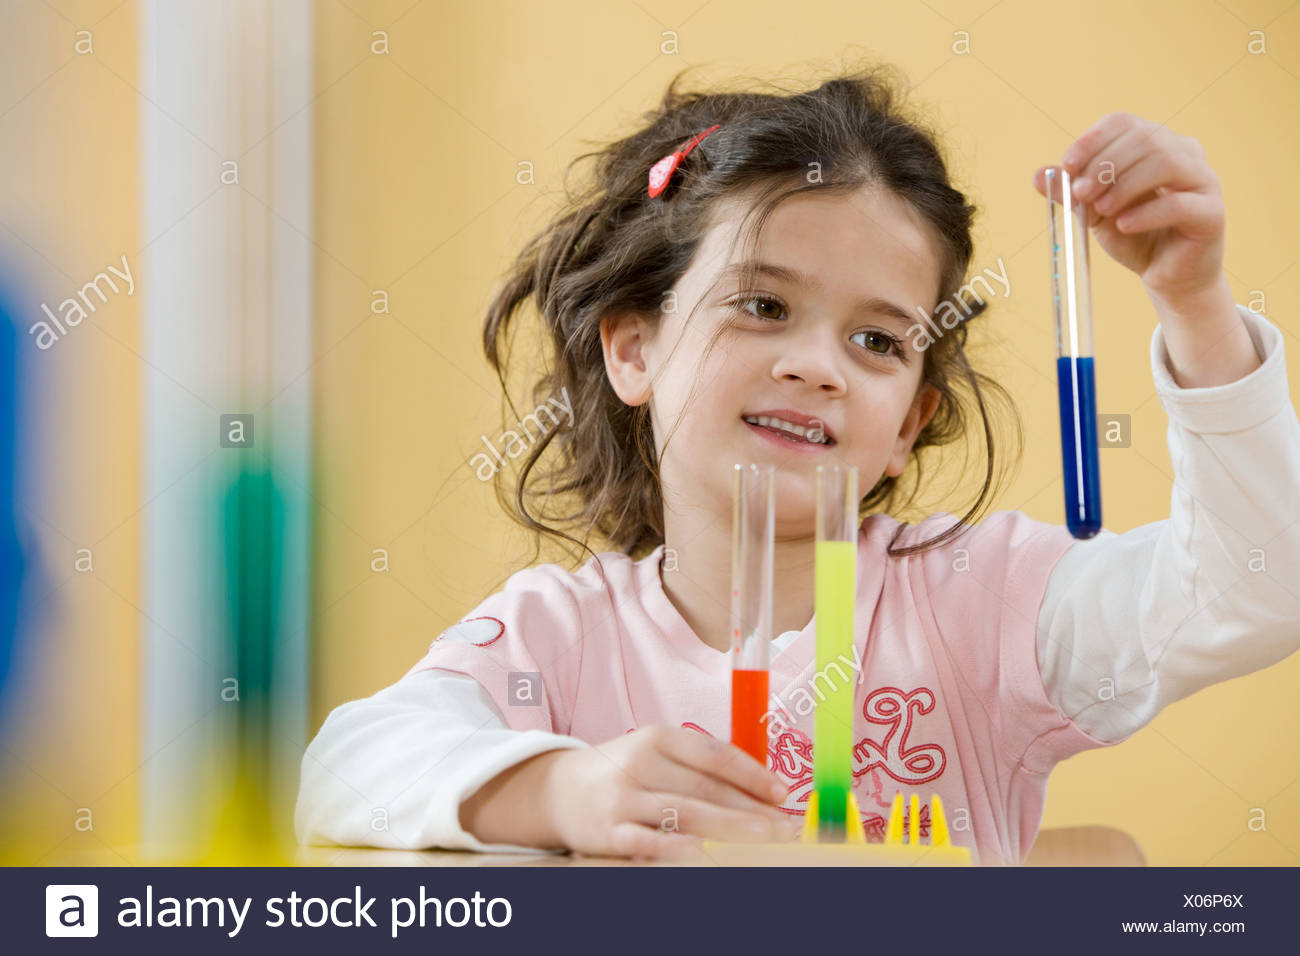 Girl with test tubes - Stock Image